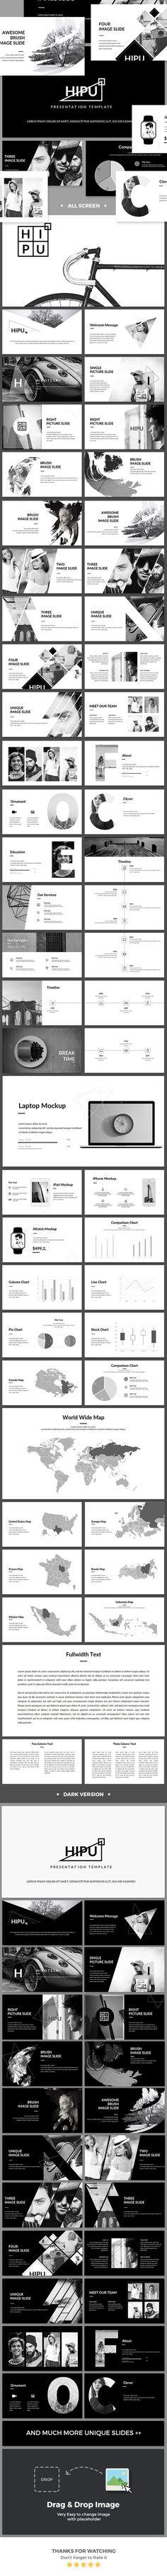 Buy HIPU - Black White Presentation Template by MasdikaStudio on GraphicRiver. Overview HIPU – Black White Powerpoint Template has a professional, ultra-modern and unique design, where each slide . Powerpoint Themes, Business Powerpoint Templates, Powerpoint Presentation Templates, Keynote Template, Web Design, Slide Design, Graphic Design Layouts, Brochure Design, Design Presentation